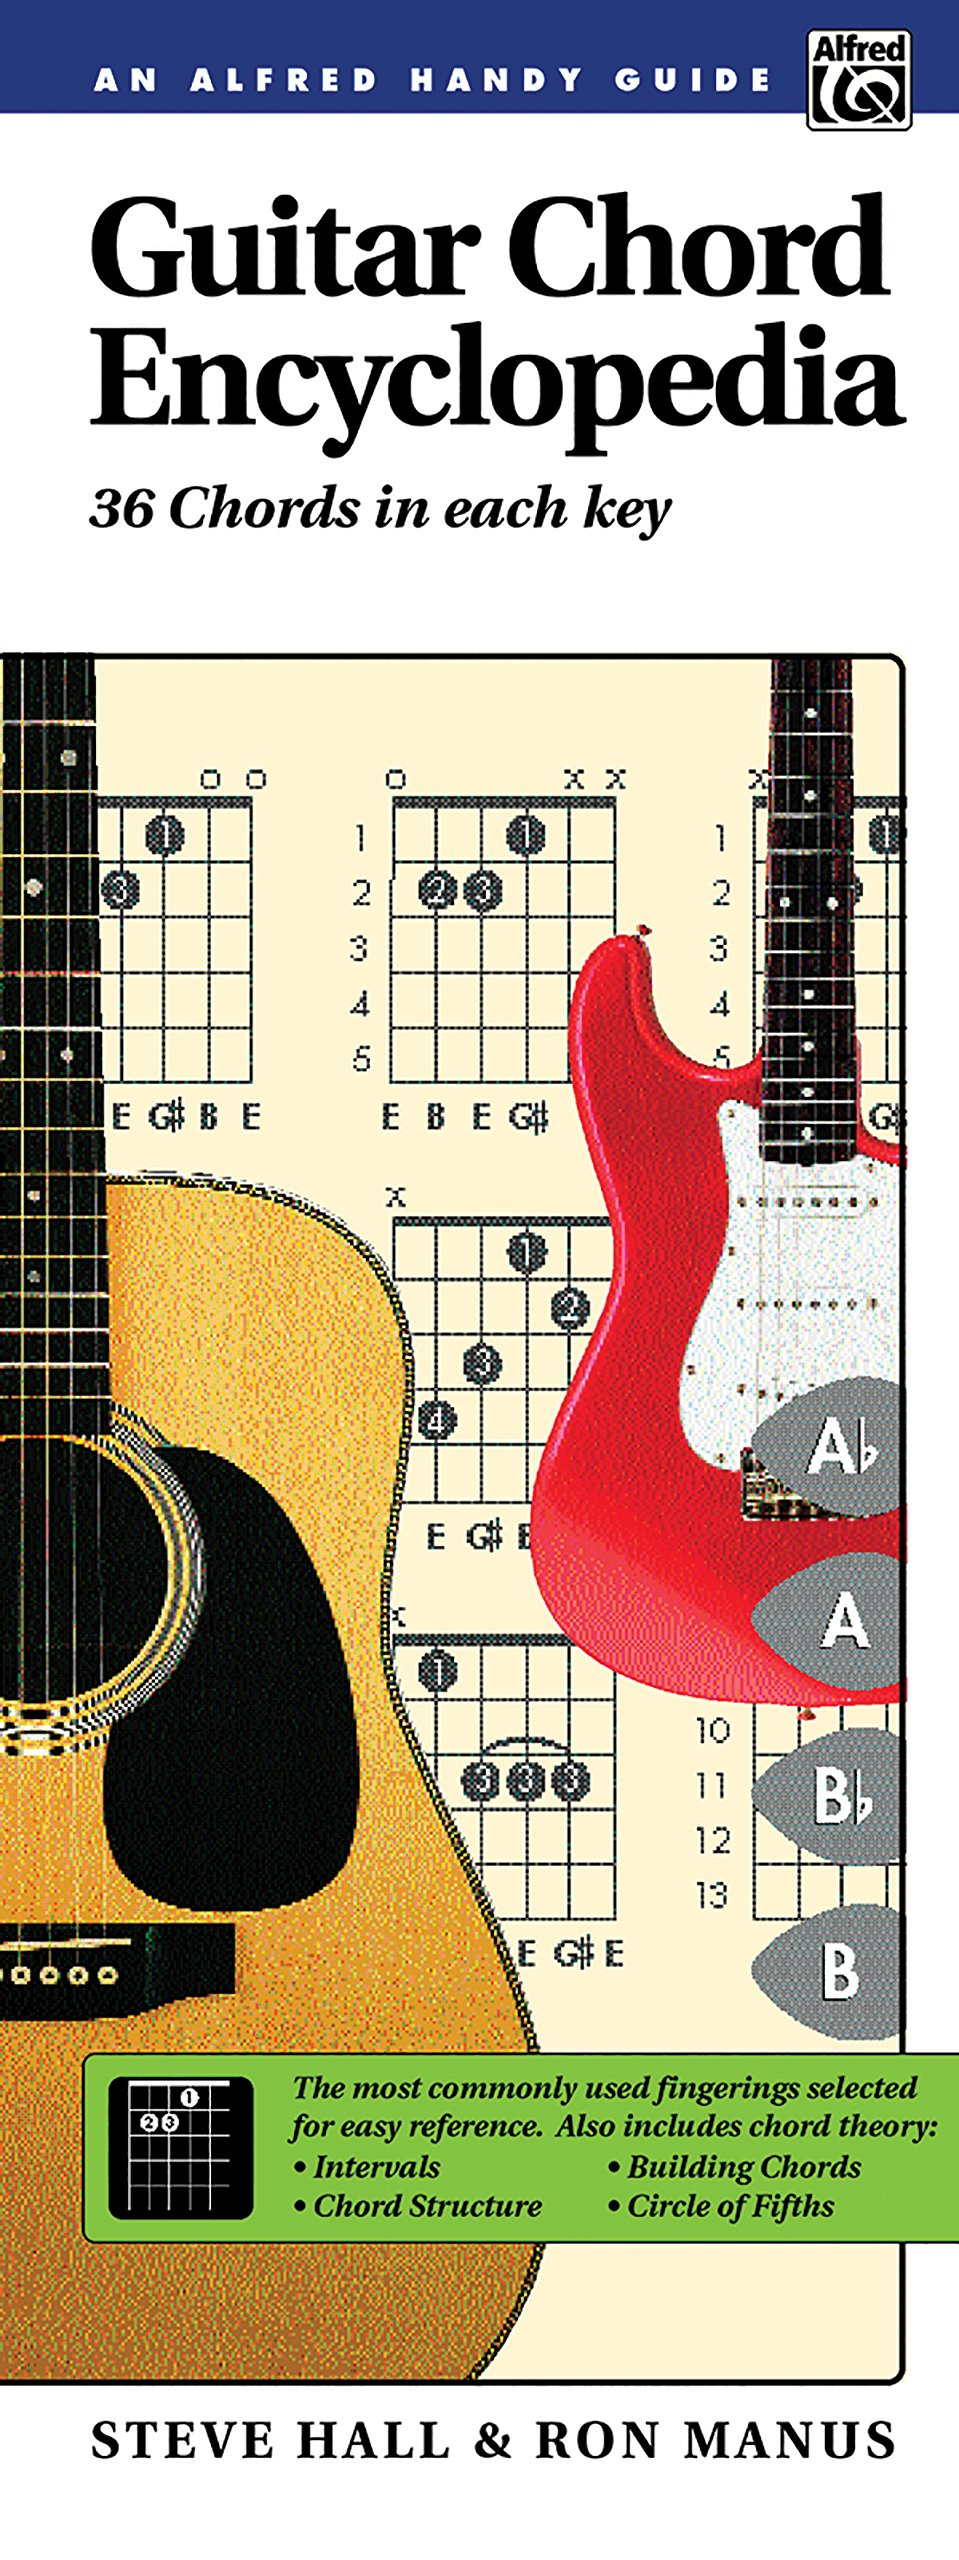 Guitar Chord Encyclopedia 36 Chords In Each Key Comb Bound Book